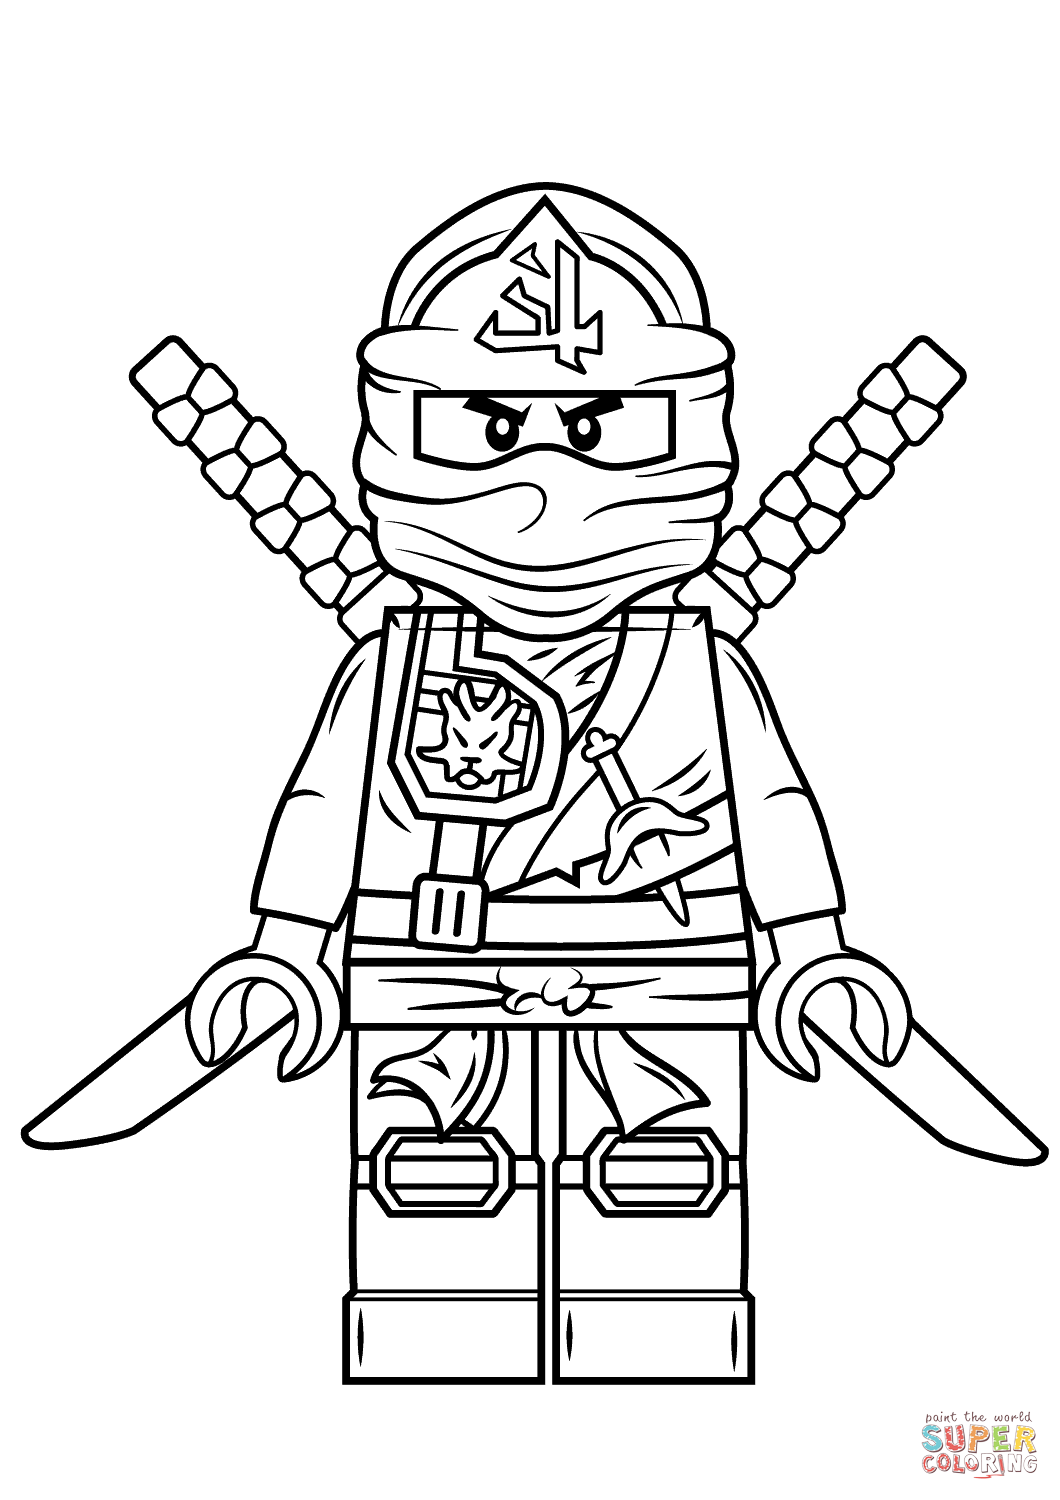 1060x1500 Perfect Ninja Coloring Pages For Adults On To Print With Hd